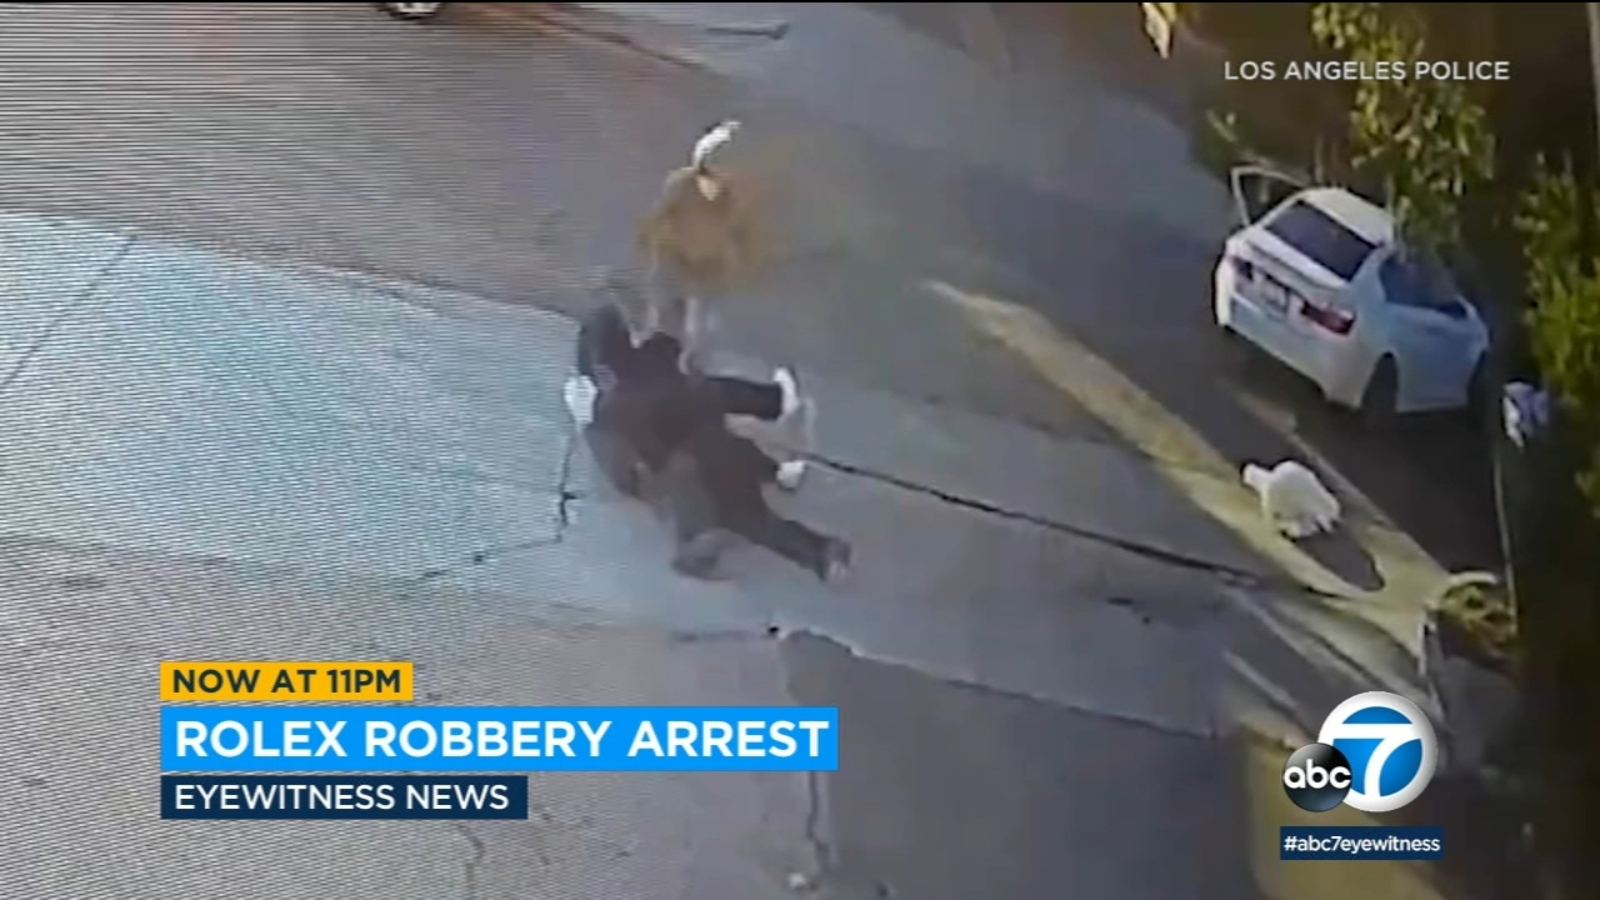 2 arrested for Rolex robberies in Los Angeles